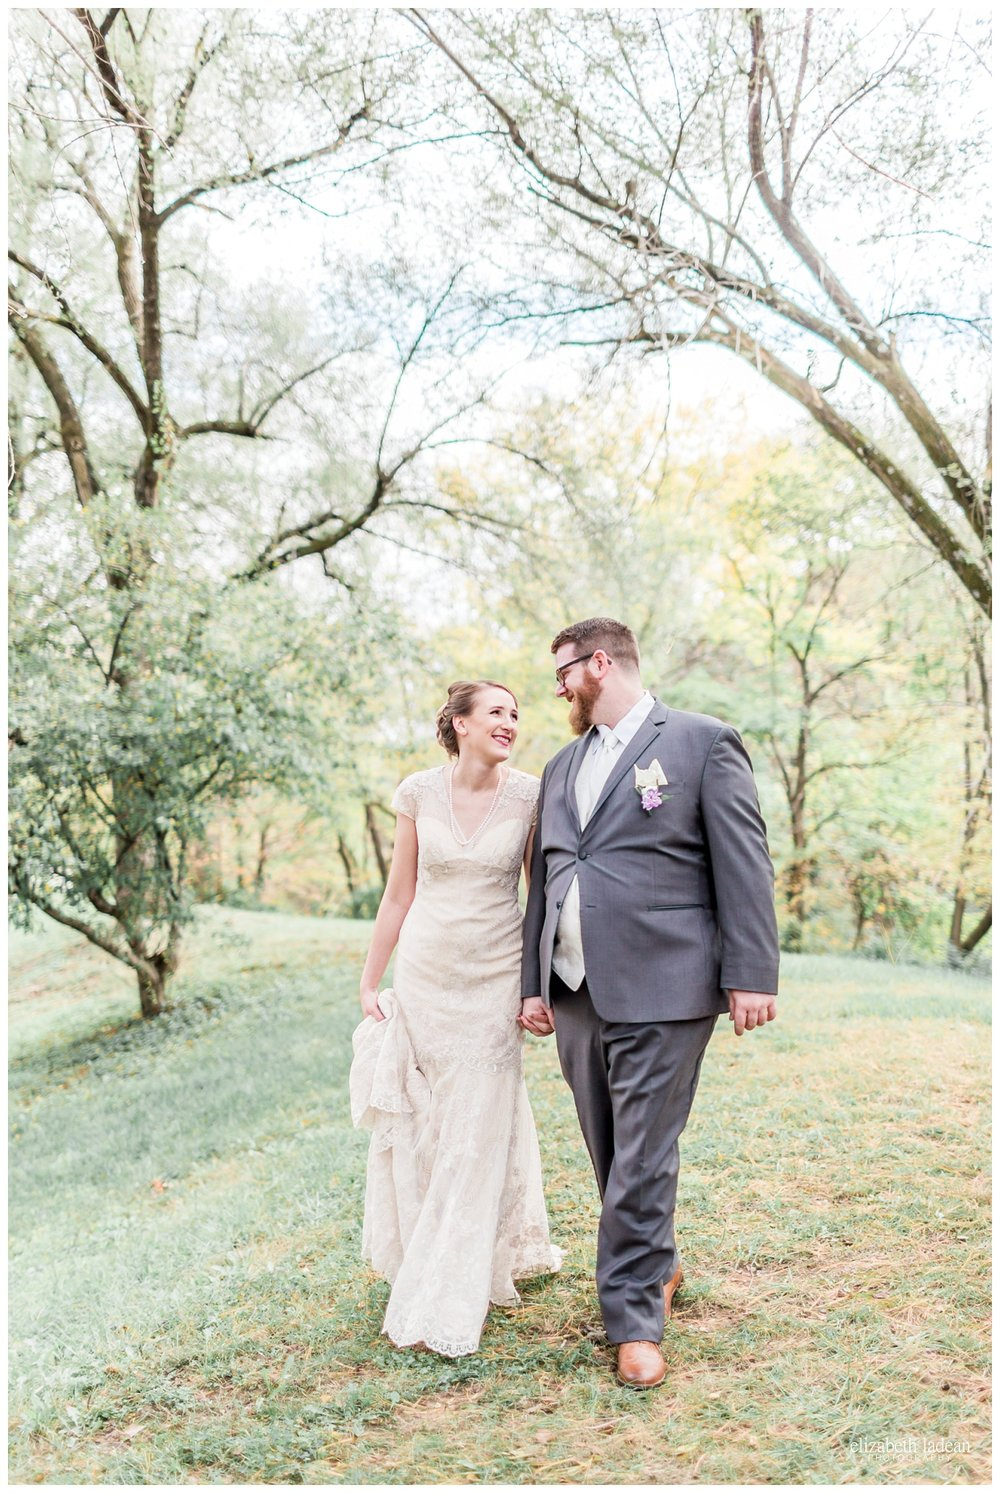 Flander-Hall-Excelsior-Springs-Wedding-Photos-J+C1021-Kansas-City-Elizabeth-Ladean-Photography-photo-_4848.jpg